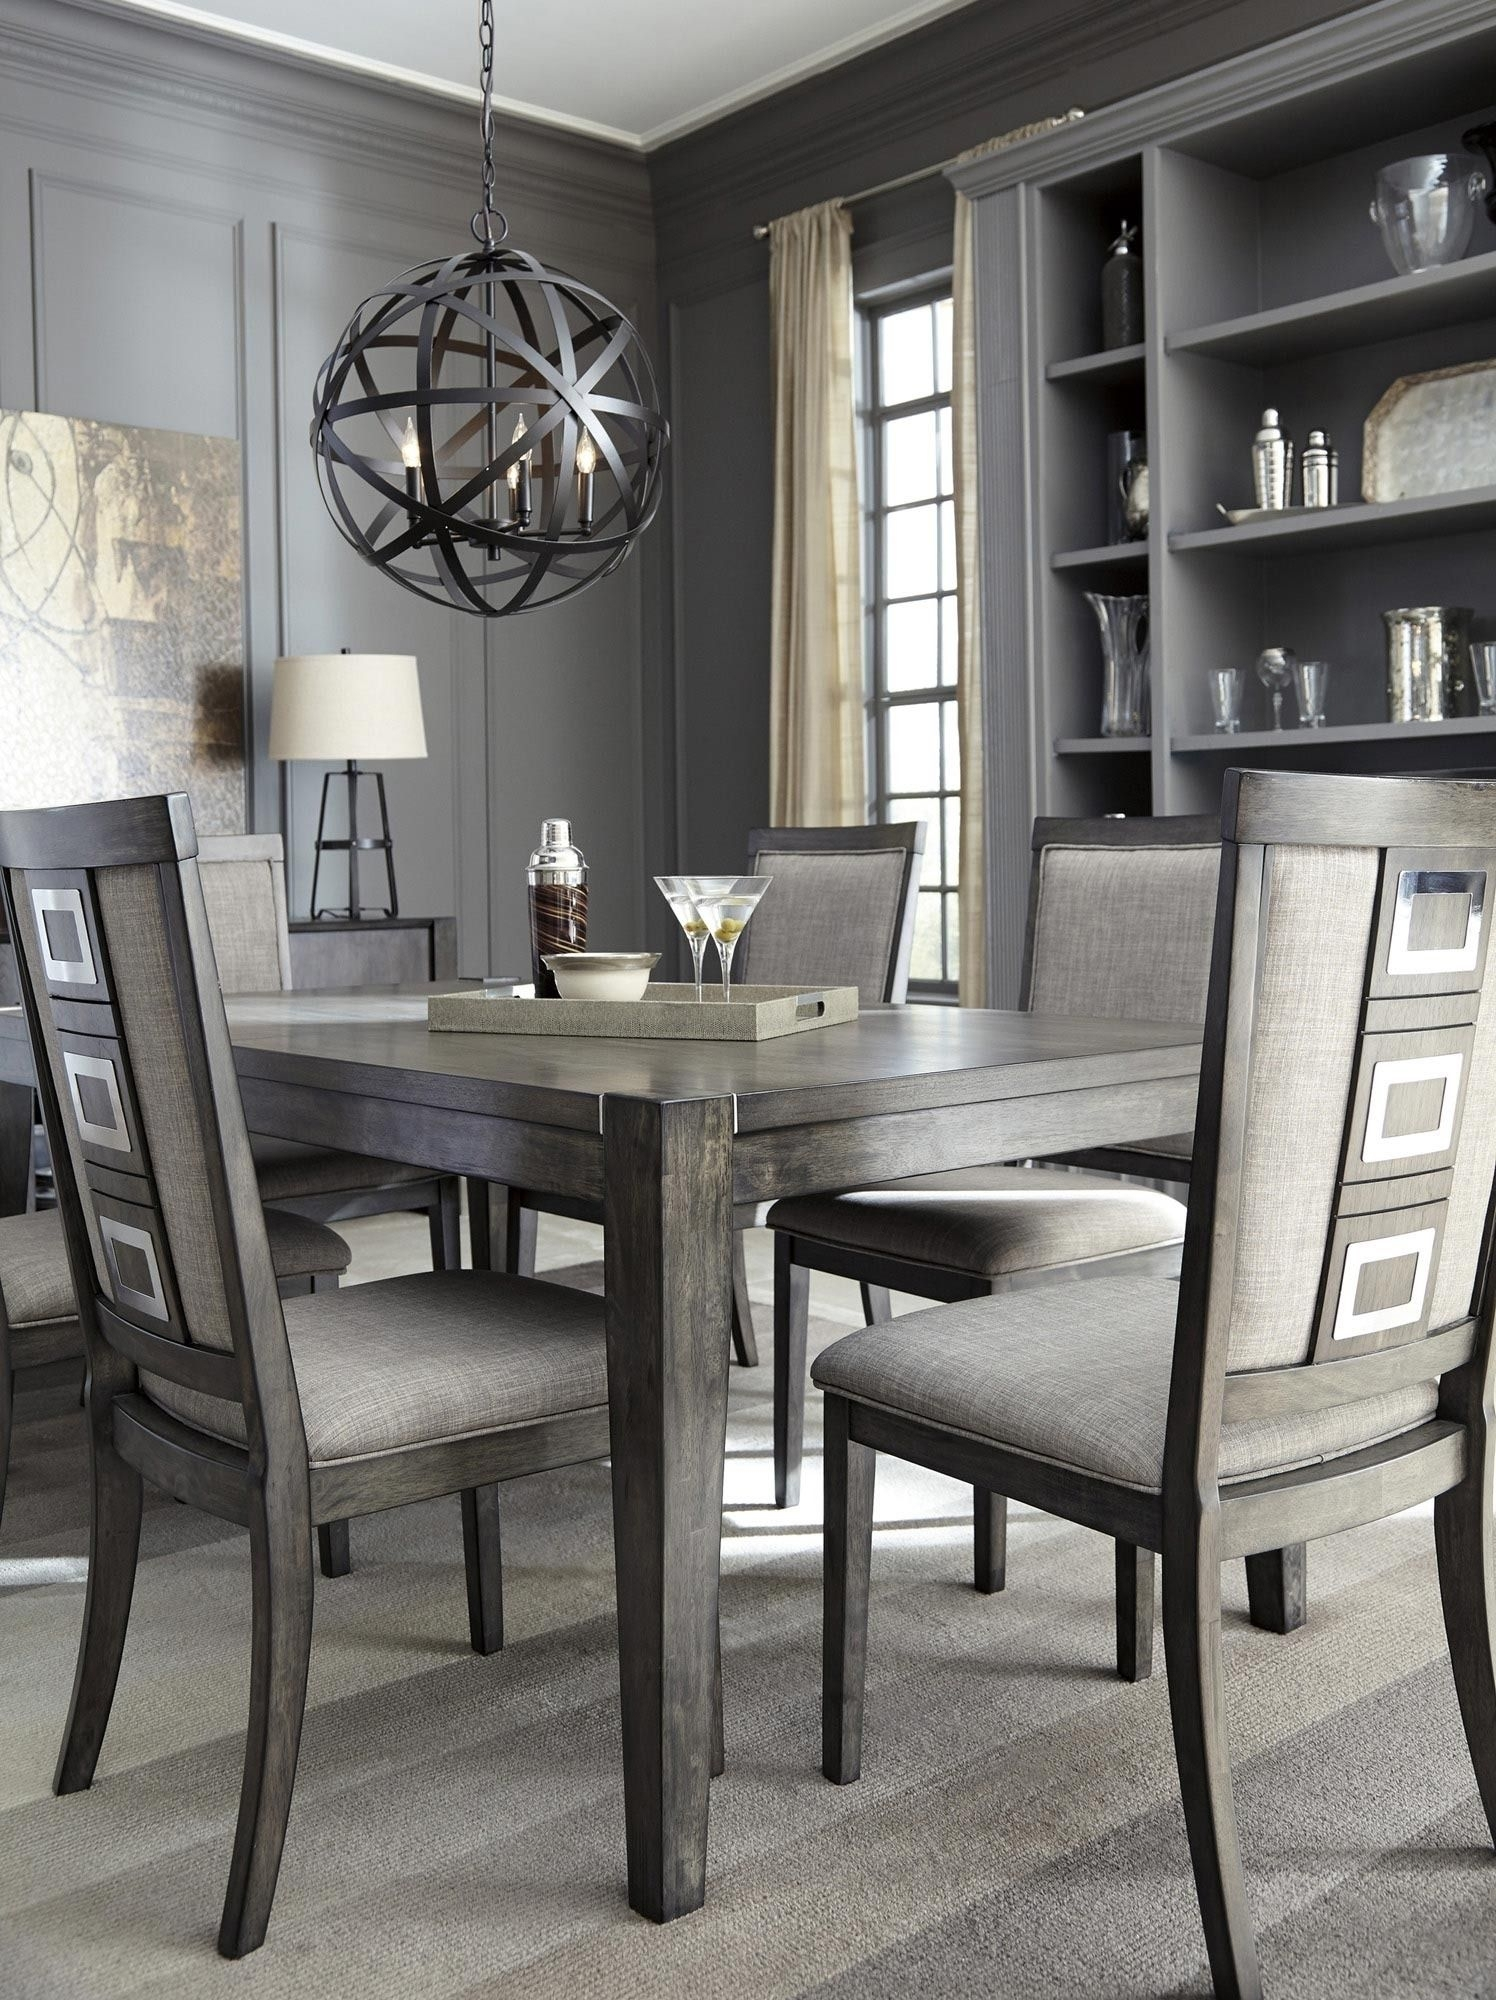 Chadoni Rectangular Dining Room Extension Table In Gray | Ashley For Most Current Candice Ii 7 Piece Extension Rectangle Dining Sets (View 16 of 20)